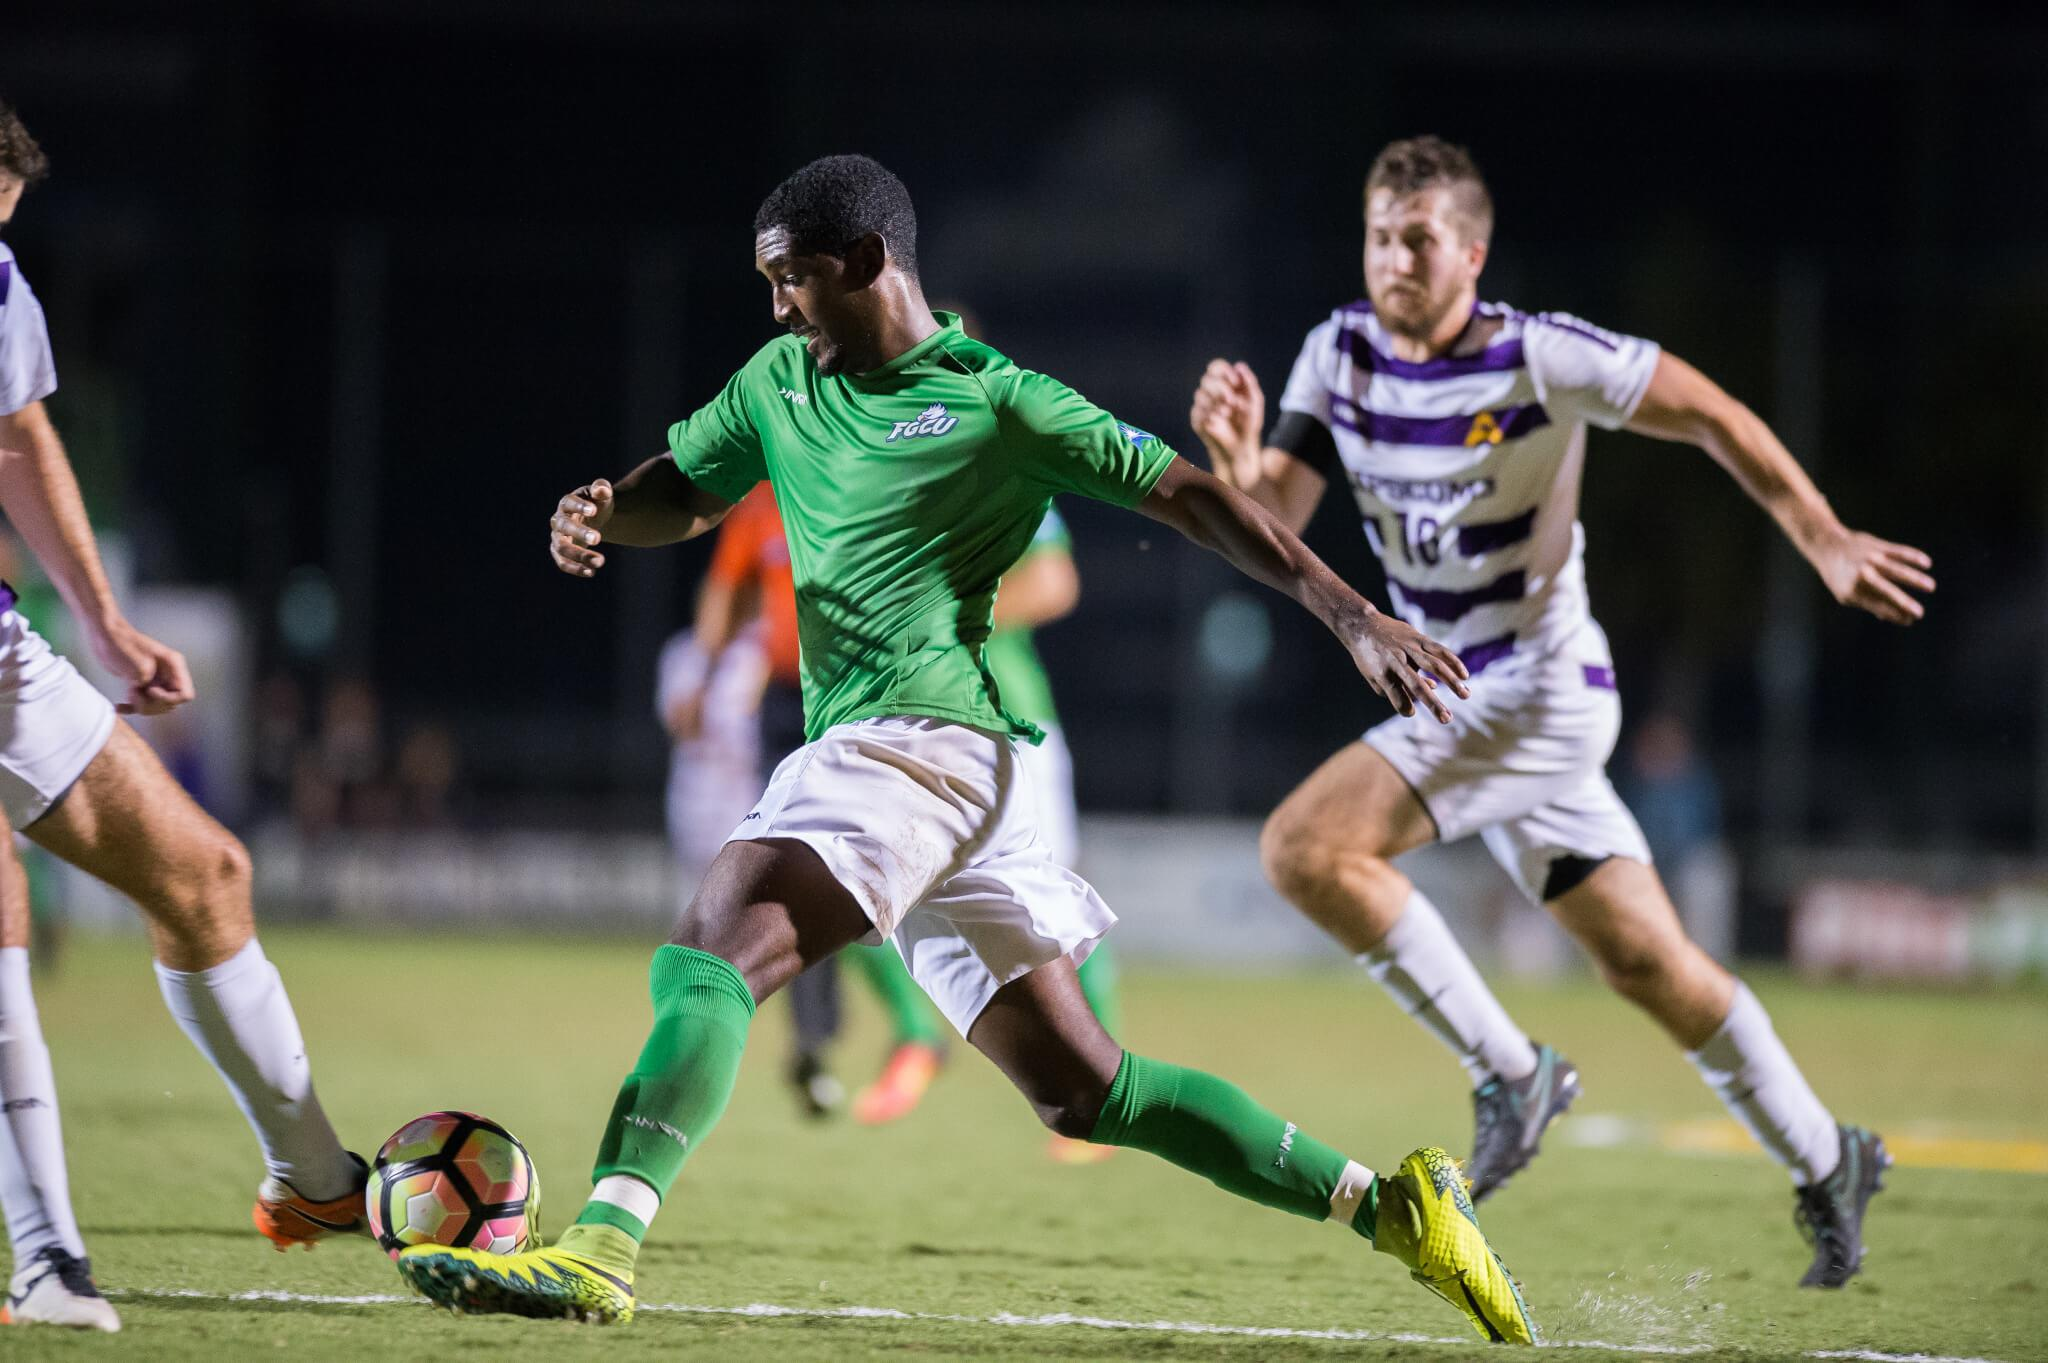 No. 20 FGCU men's soccer advances to ASUN Men's Soccer Championship Final